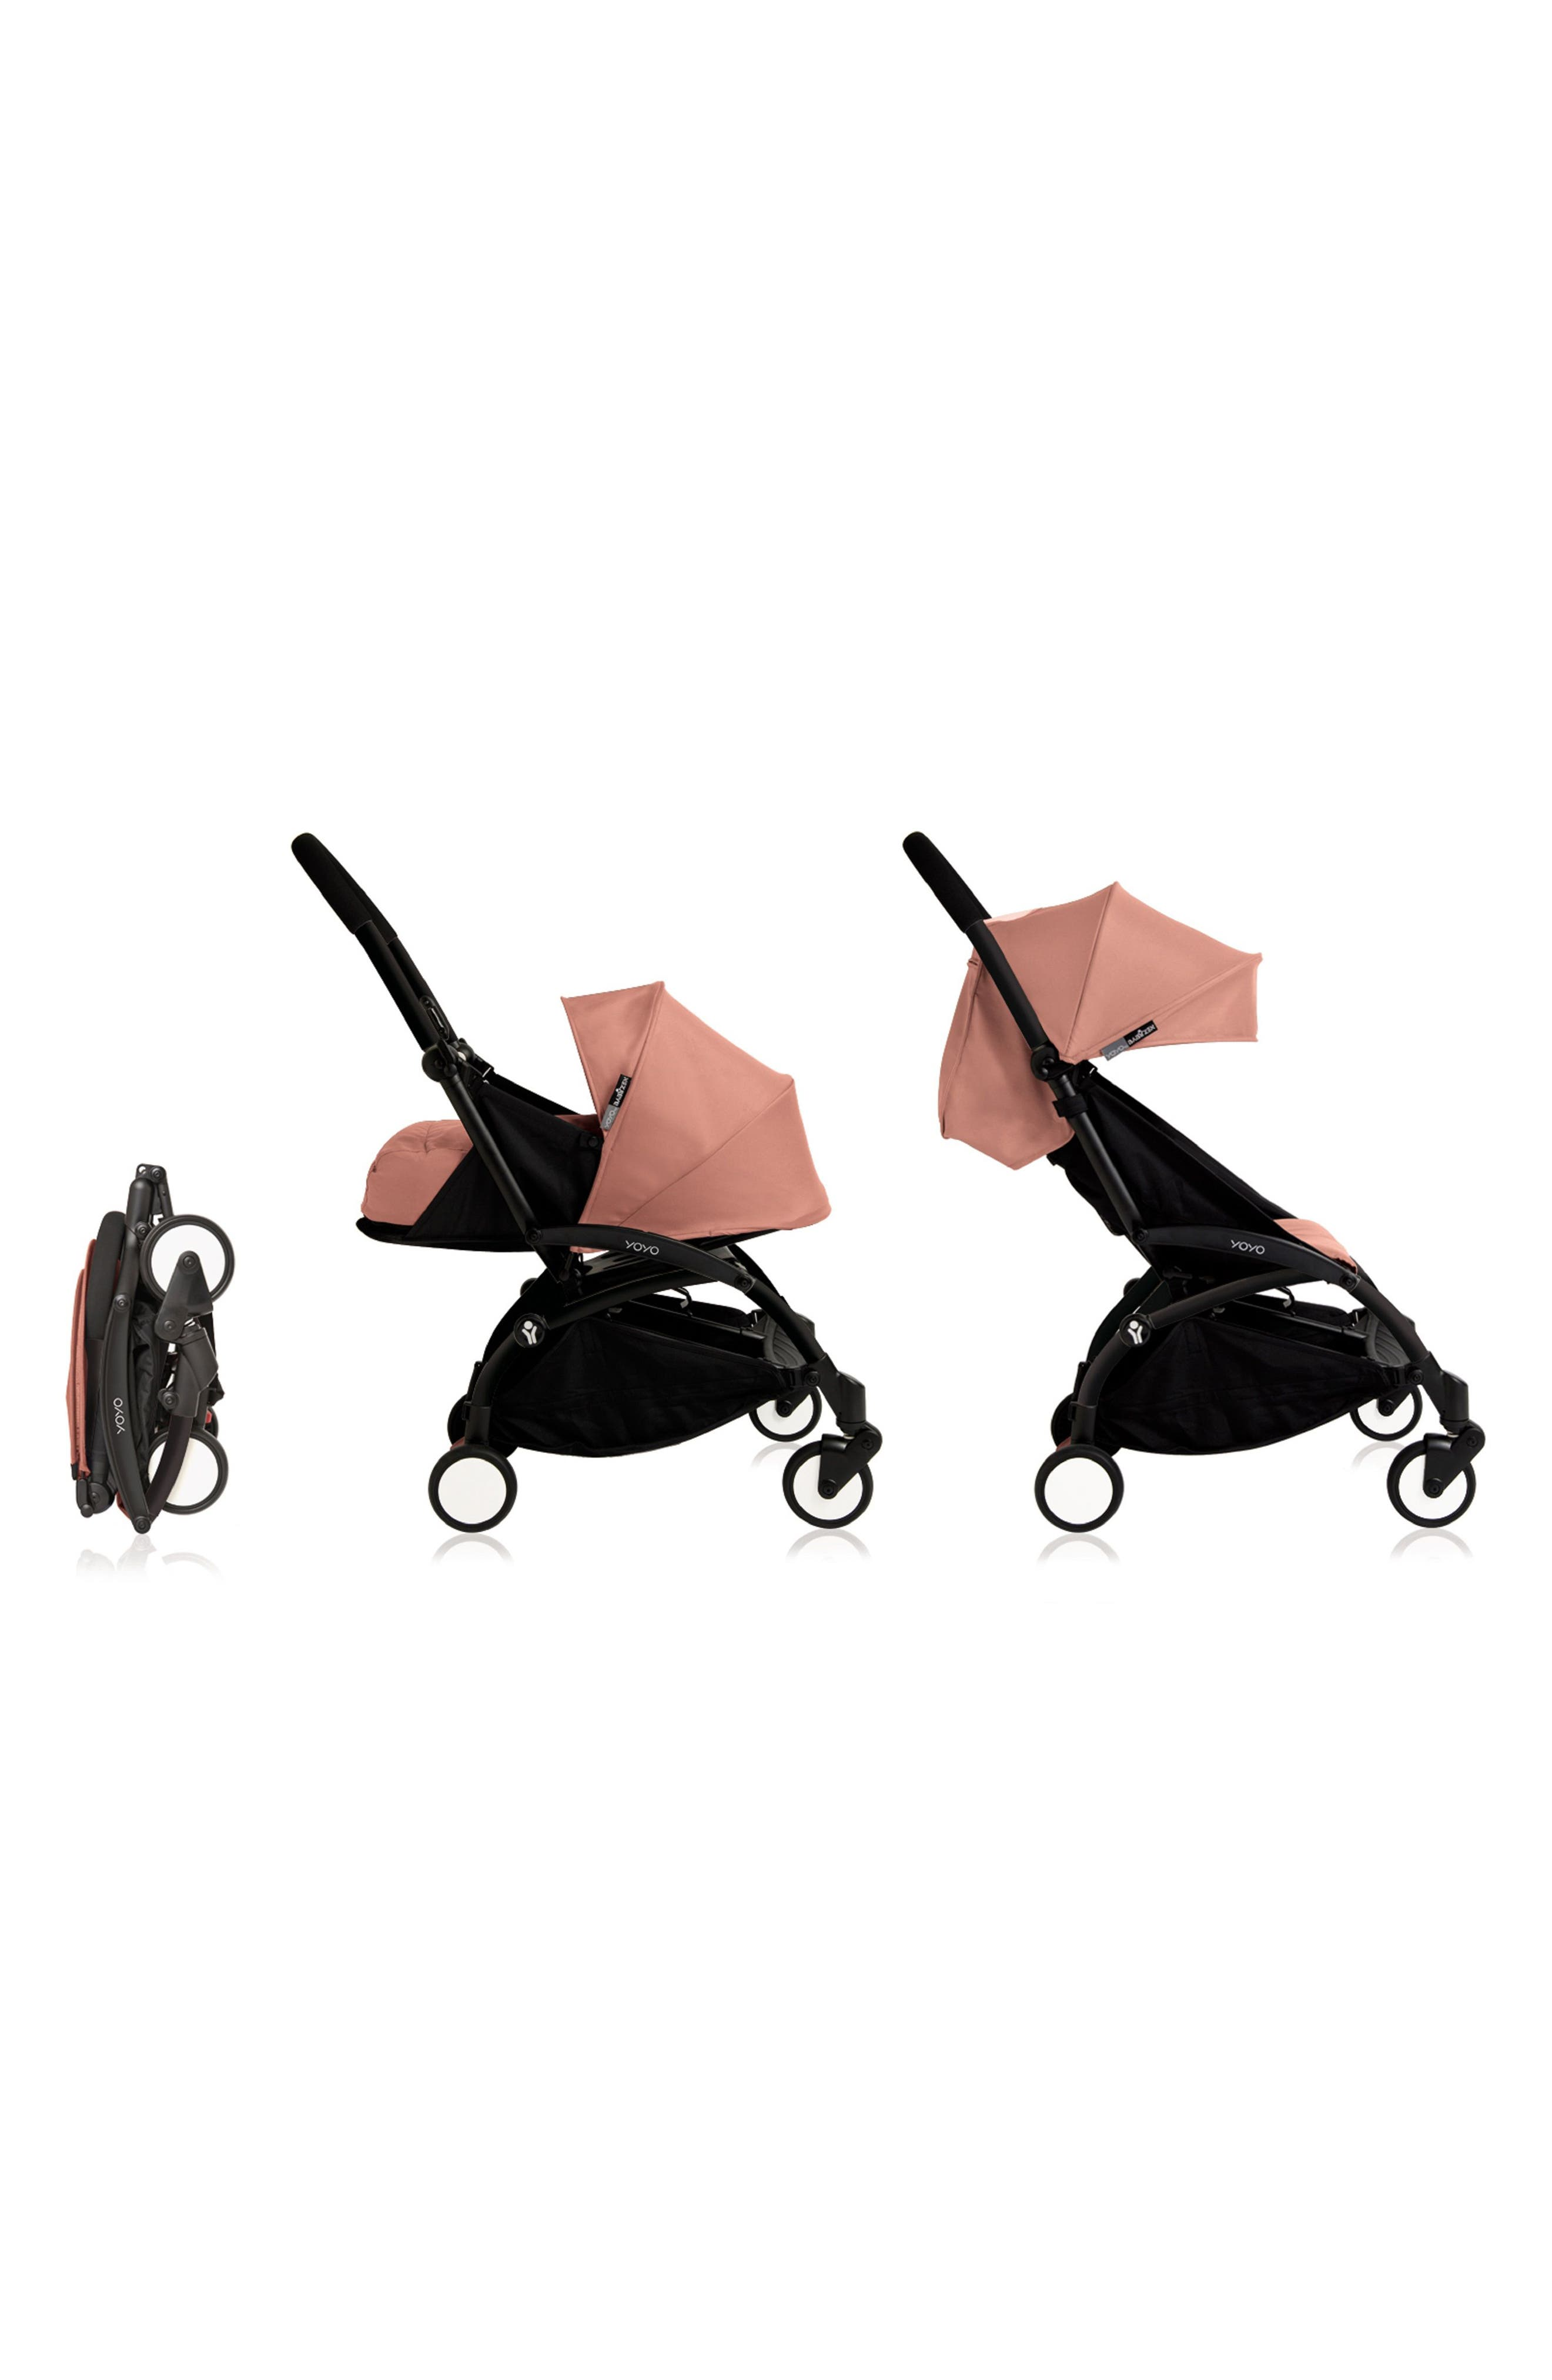 BABYZEN YOYO+ Complete Stroller with Newborn Color Pack Fabric Set,                             Alternate thumbnail 2, color,                             Ginger